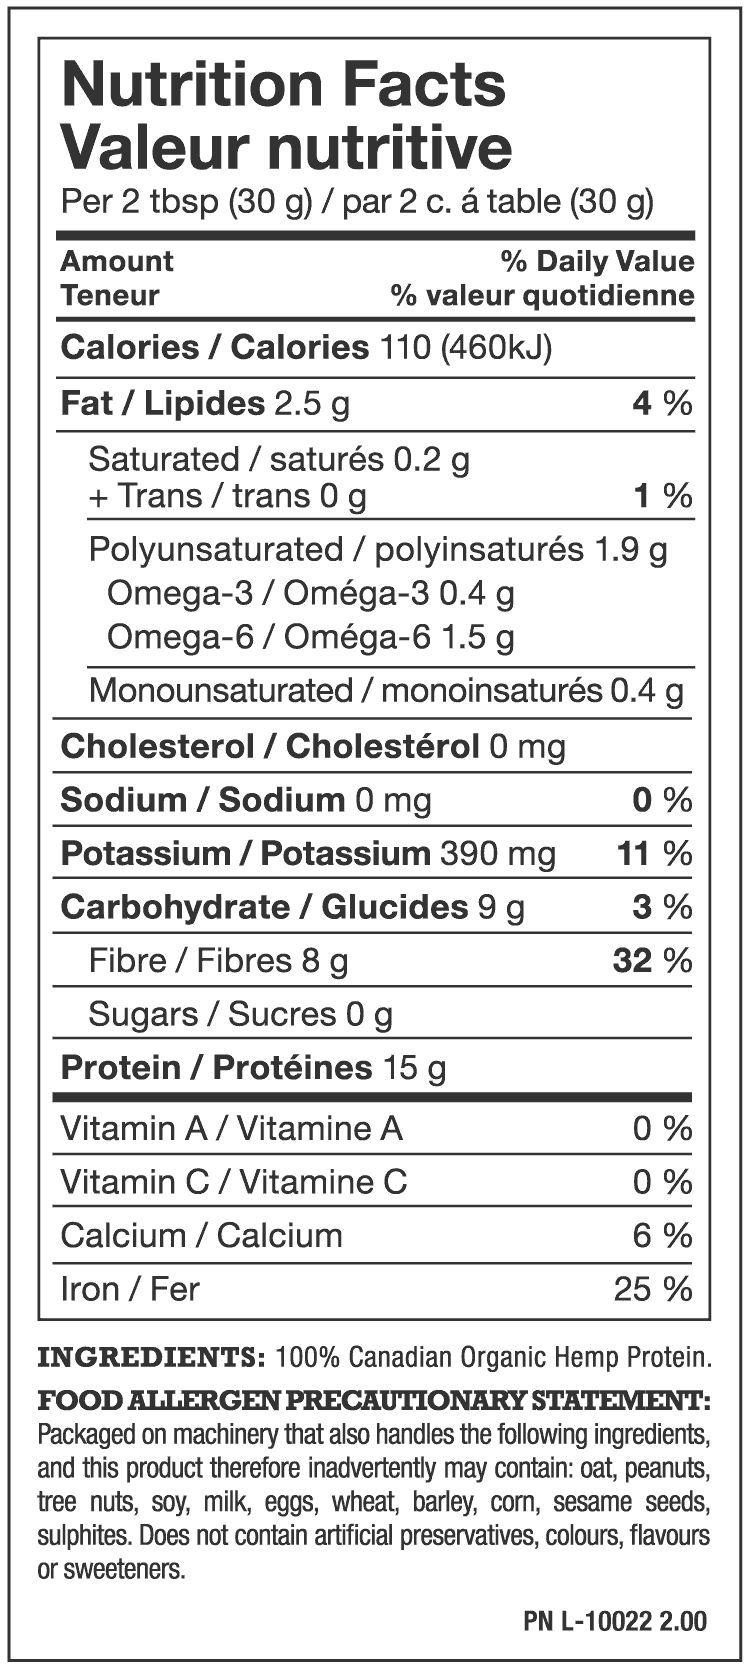 nutritionalfacts-organichempprotein-ca.png